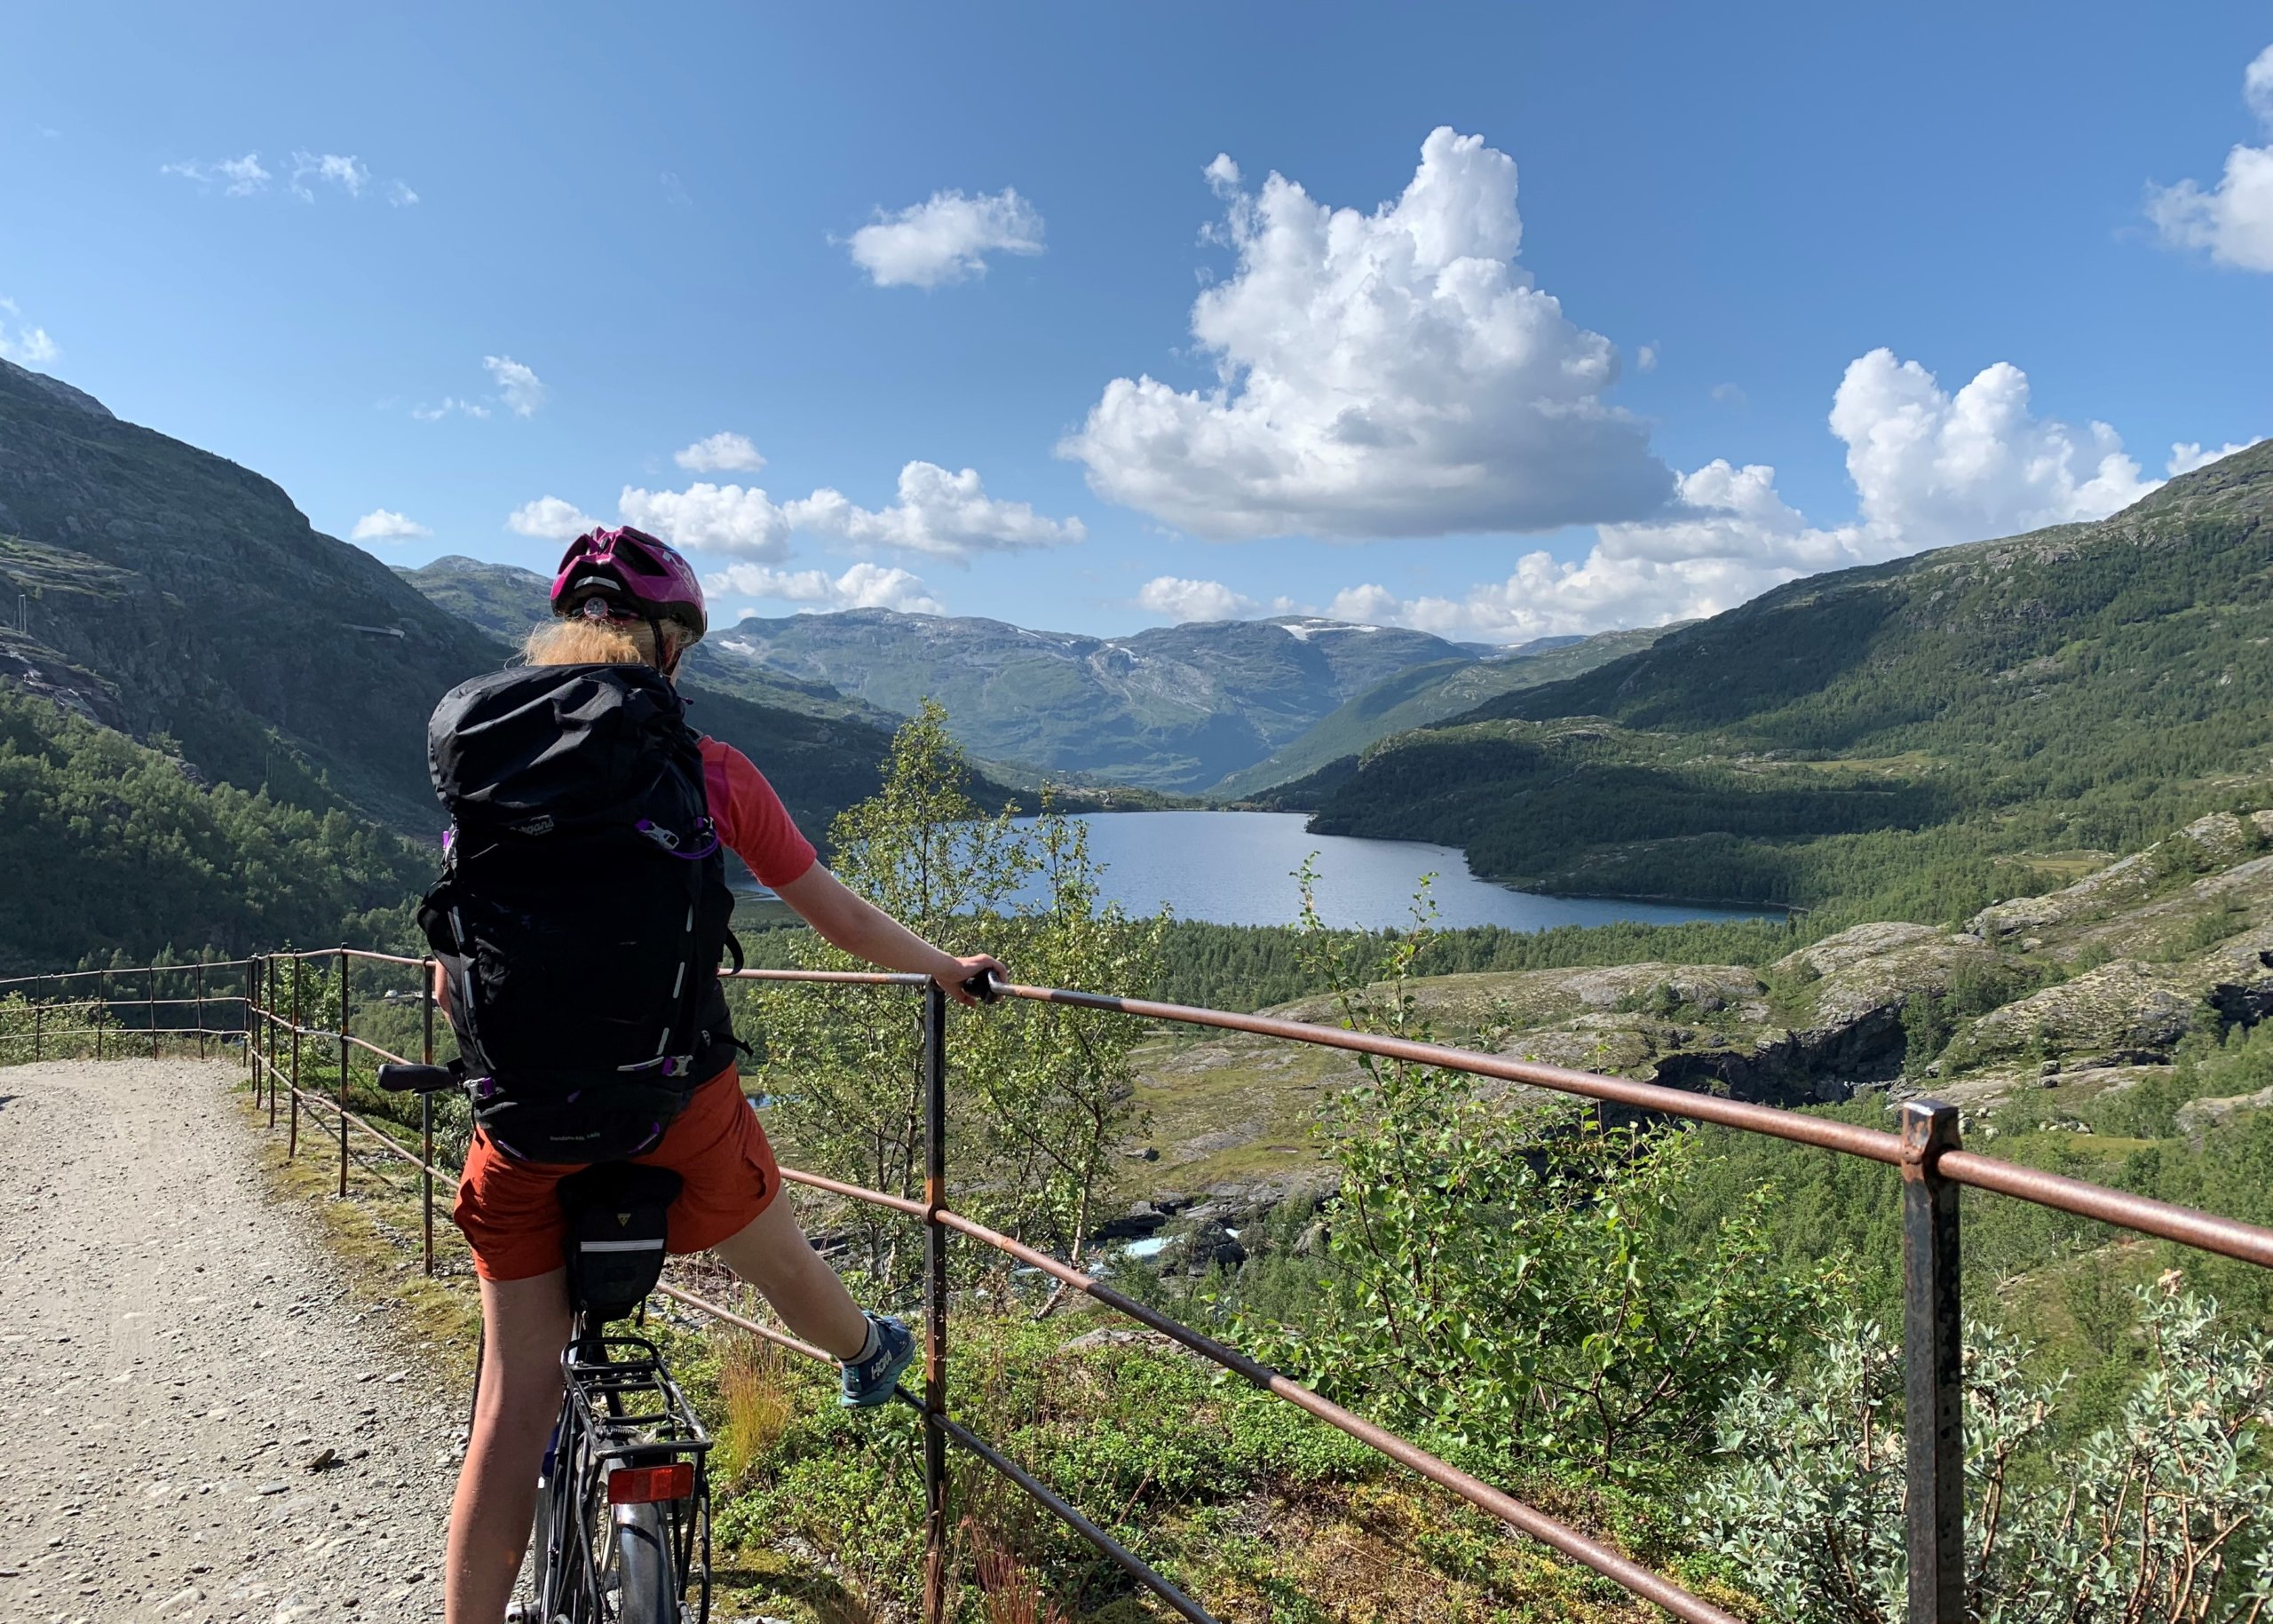 Day 5 Cycling or hiking in the mountains